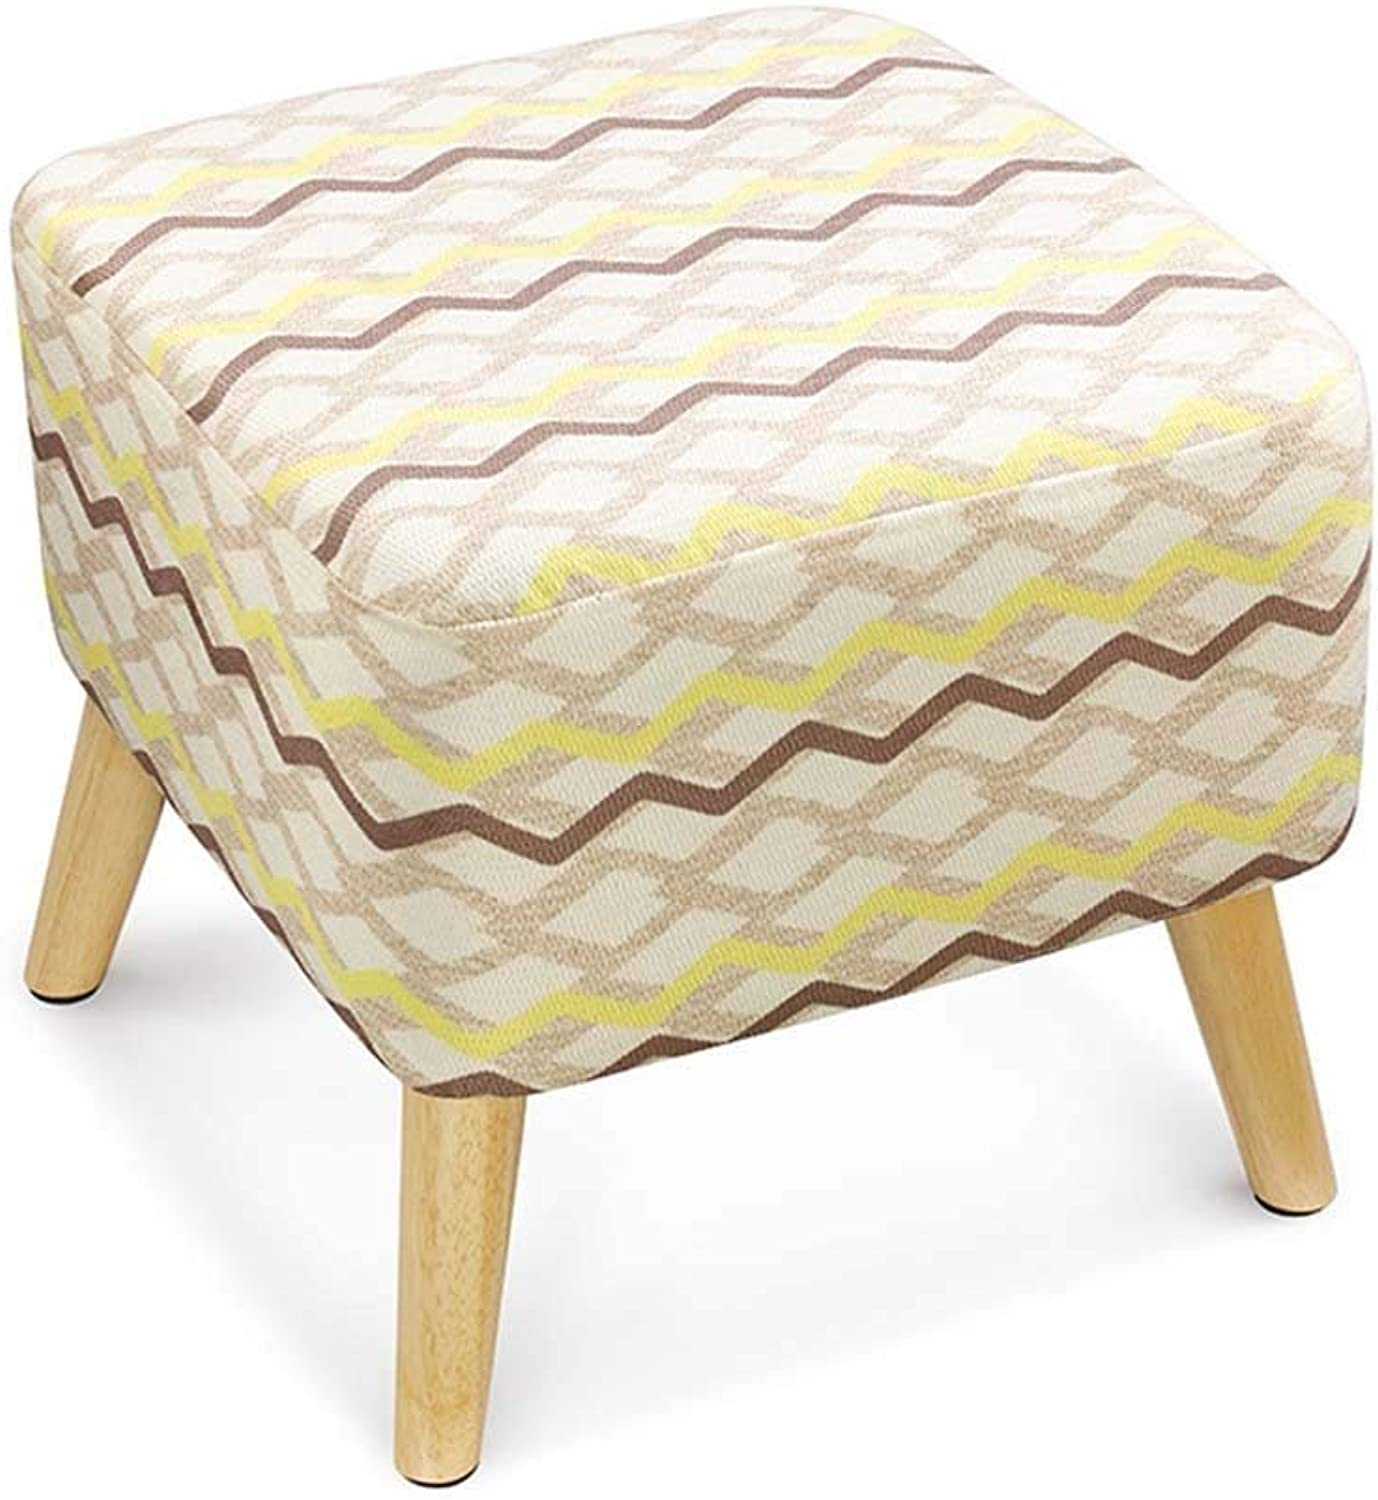 QTQZ Brisk- Solid Wood Creative Home Sofa Stool Living Room Changing shoes Stool Fashion Adult Square Stool Cloth Sofa Stool (Multiple colors Available) (color  2)